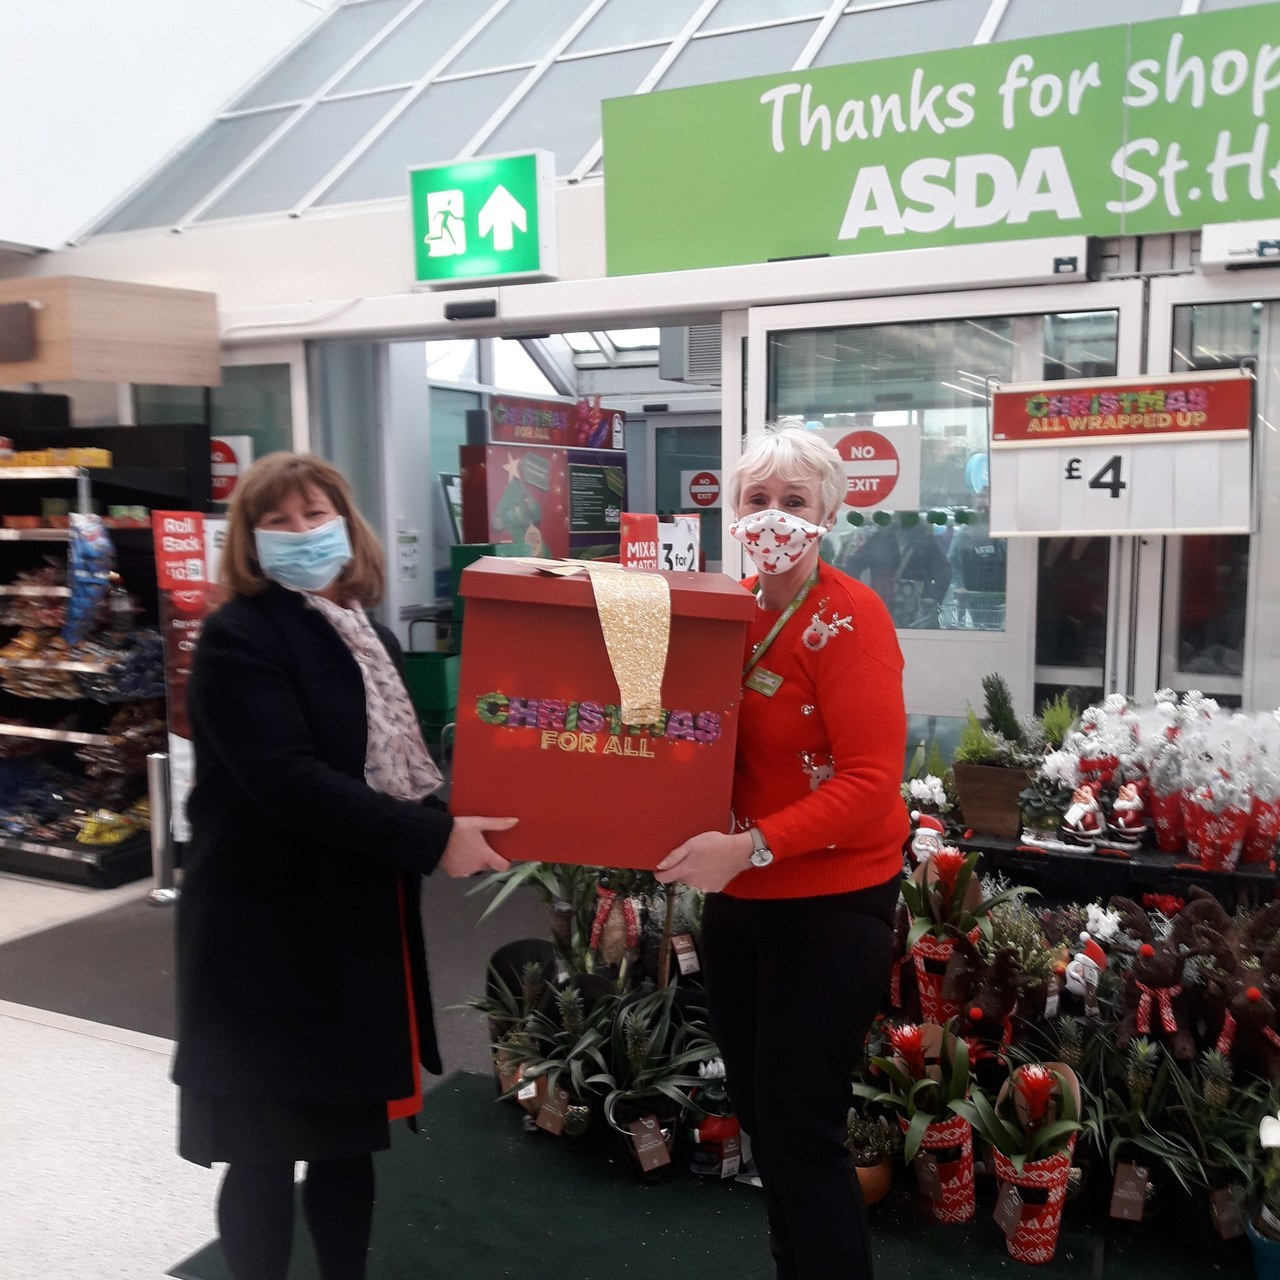 Asda St Helen's brings smiles to children's faces this Christmas | Asda St Helens